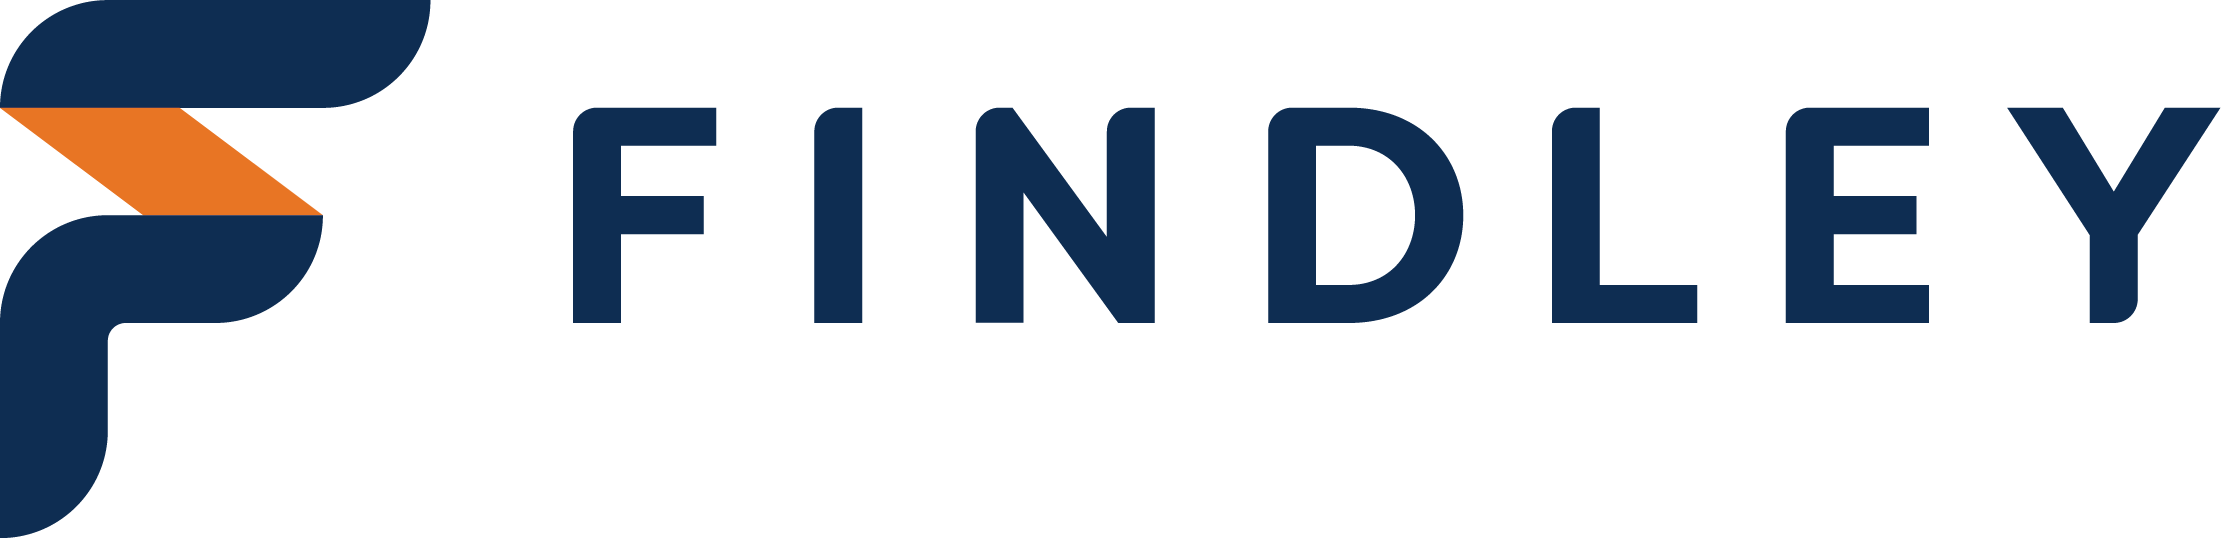 Findley_Final_logo-1